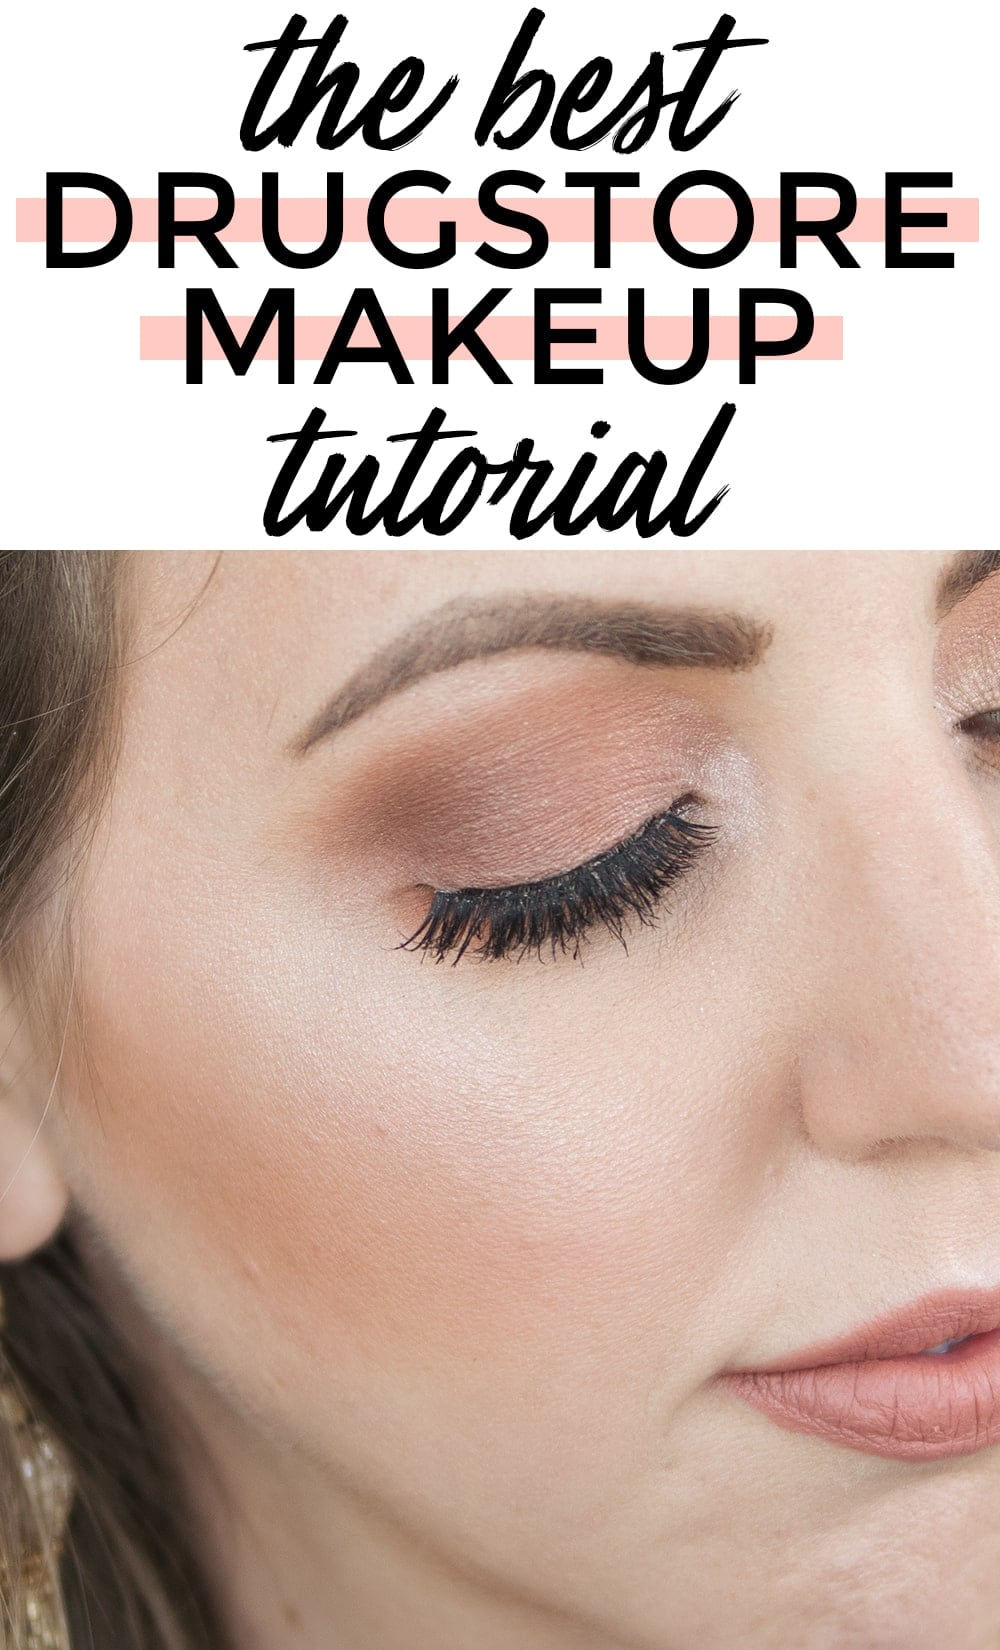 The best drugstore makeup tutorial - by Houston beauty blogger Meg O. on the Go